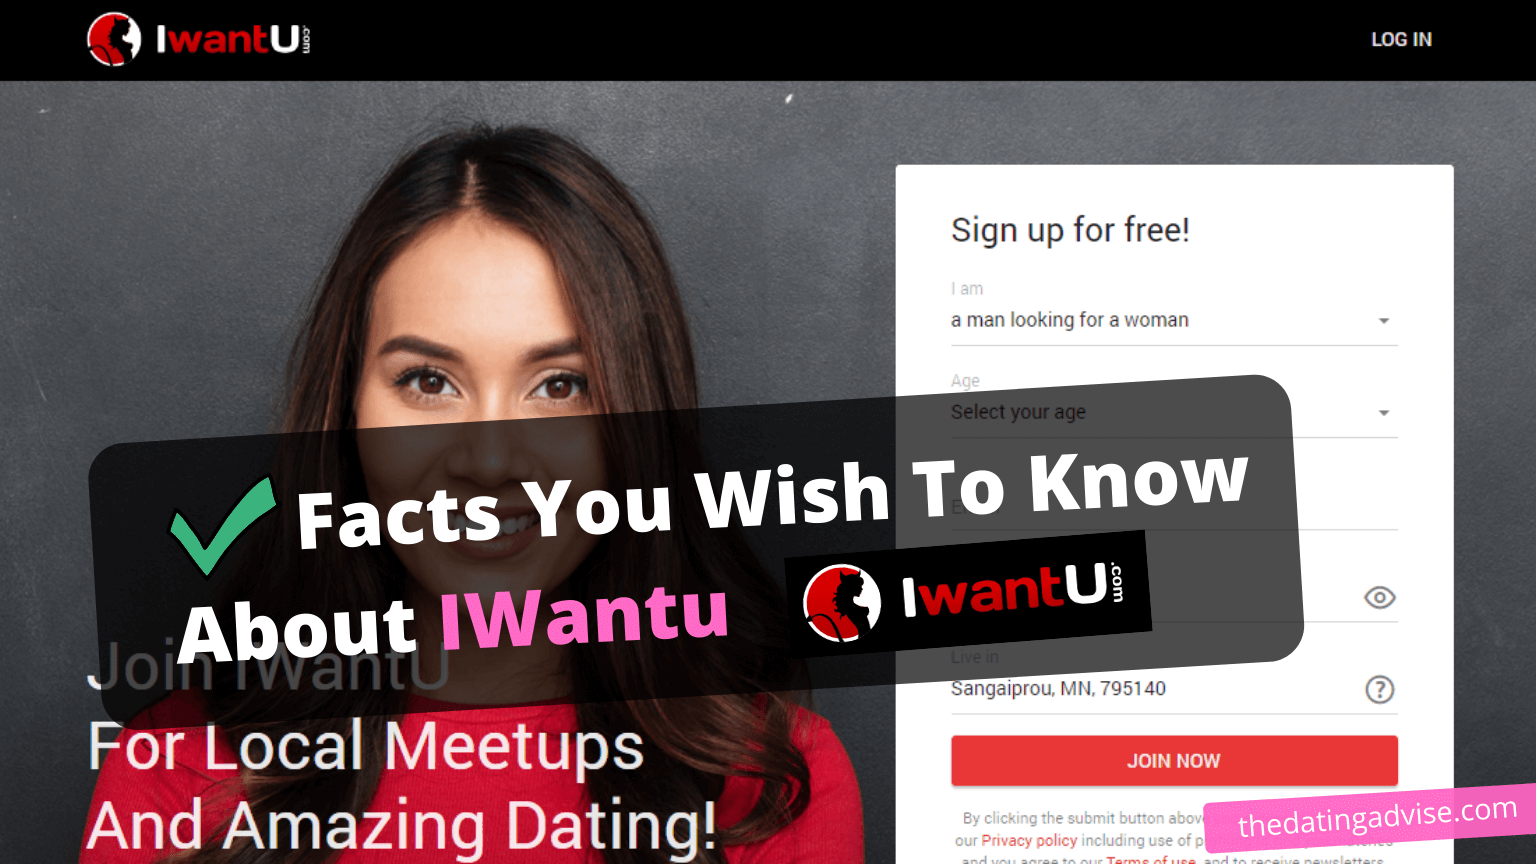 IWantu App Review - Facts You Wish To Know.